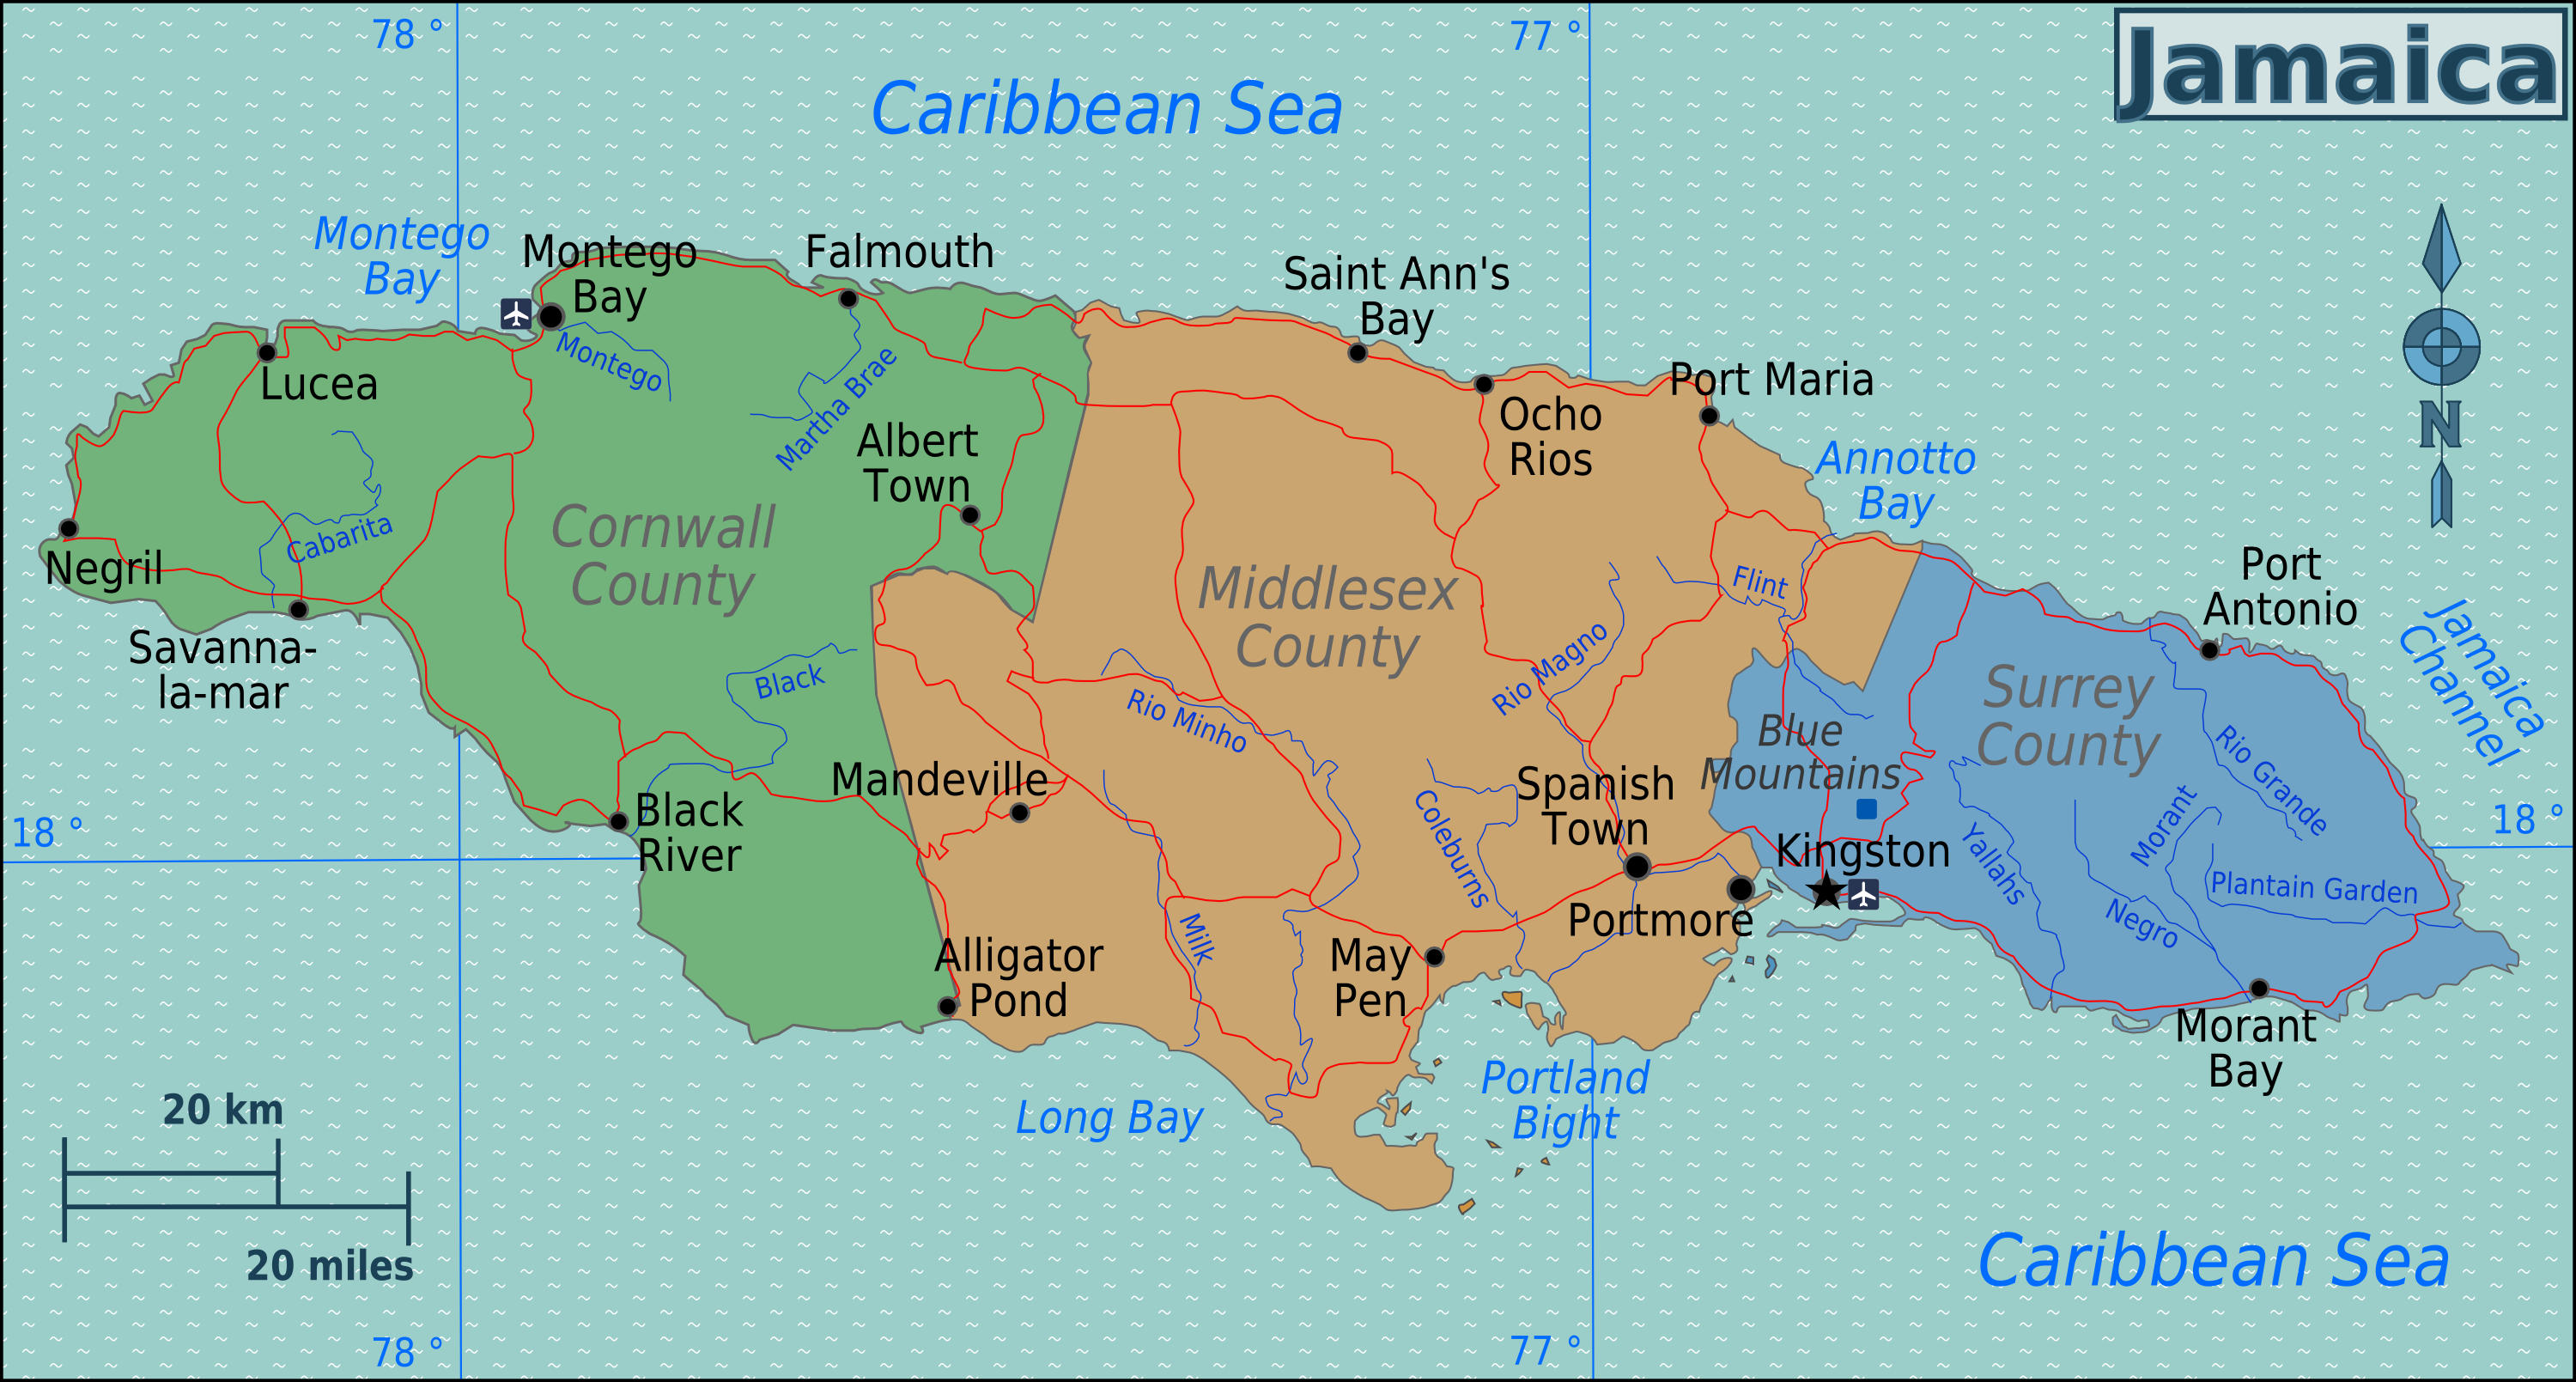 FileJamaica Regions mappng Wikimedia Commons